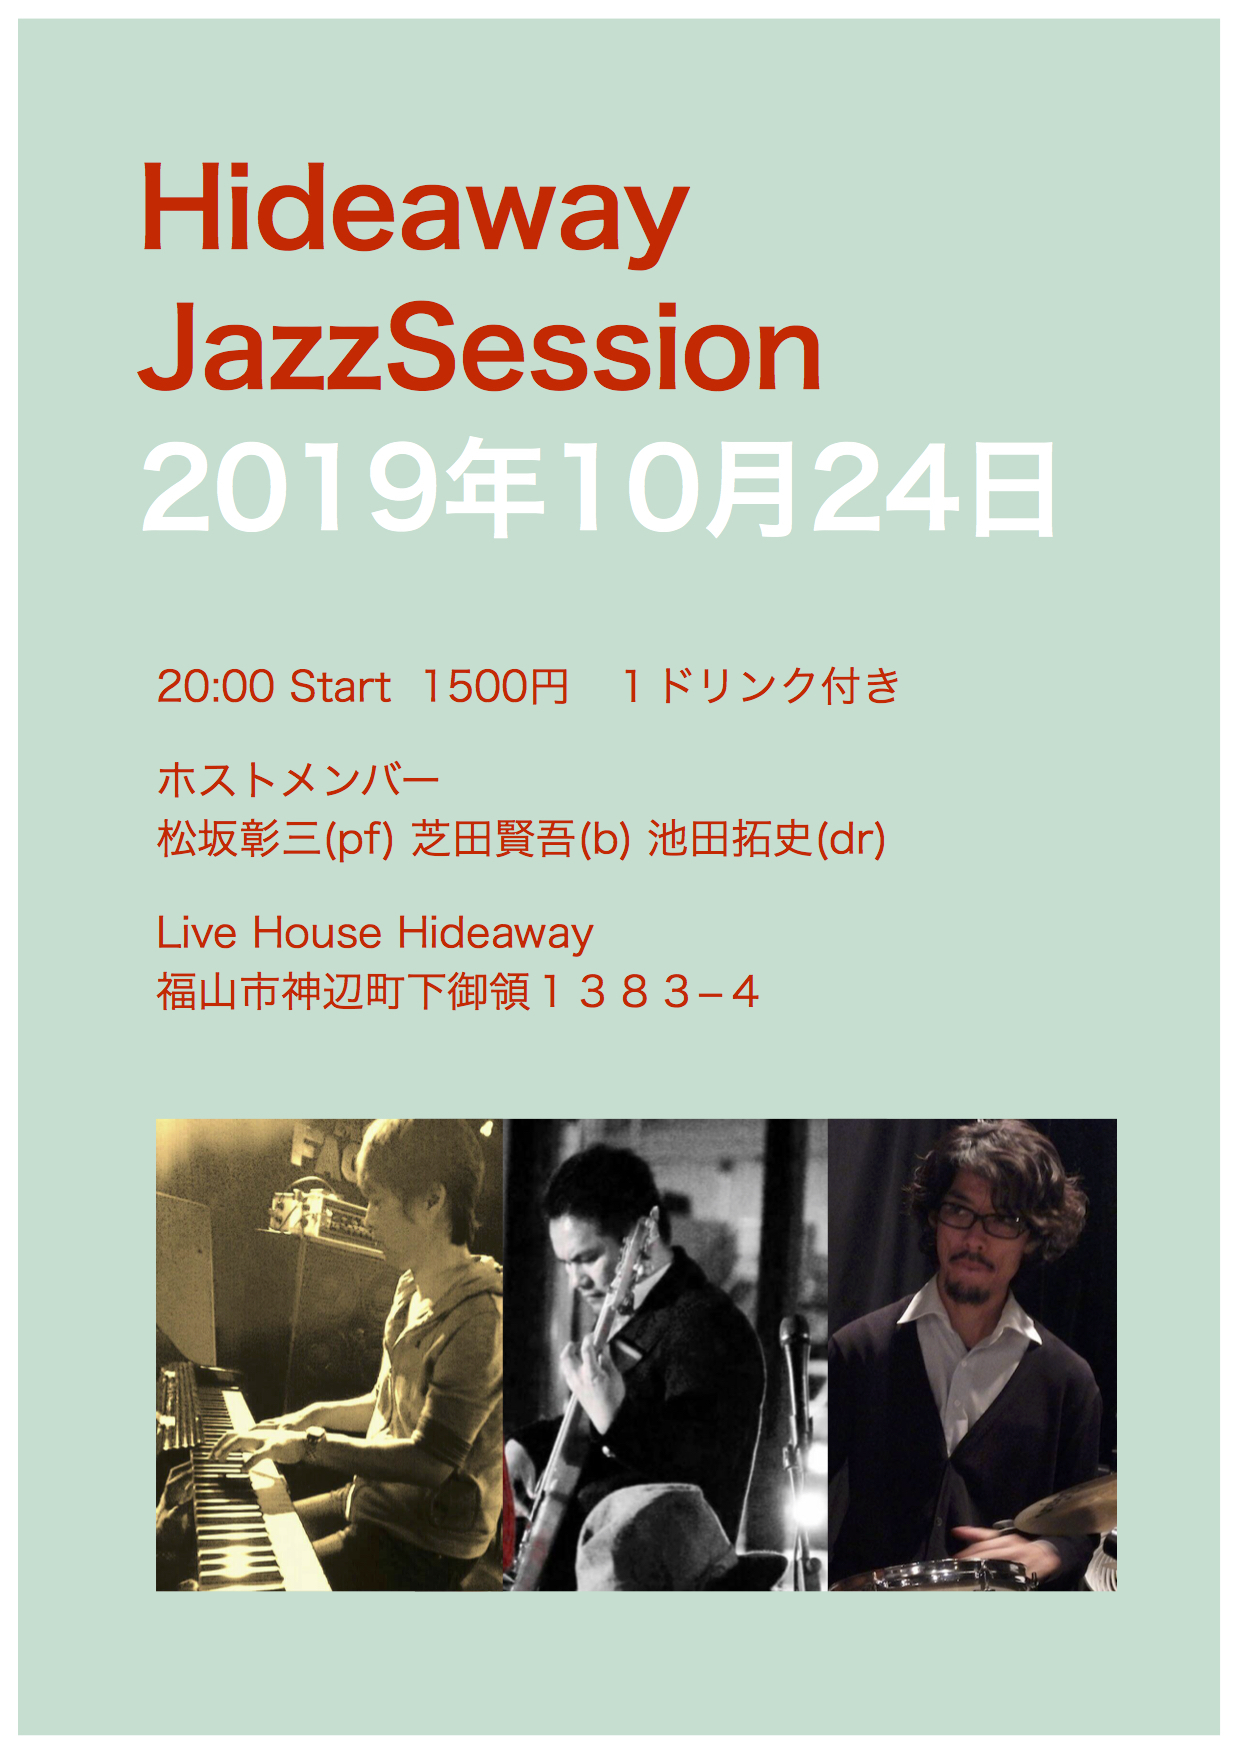 newsession20191024.jpg